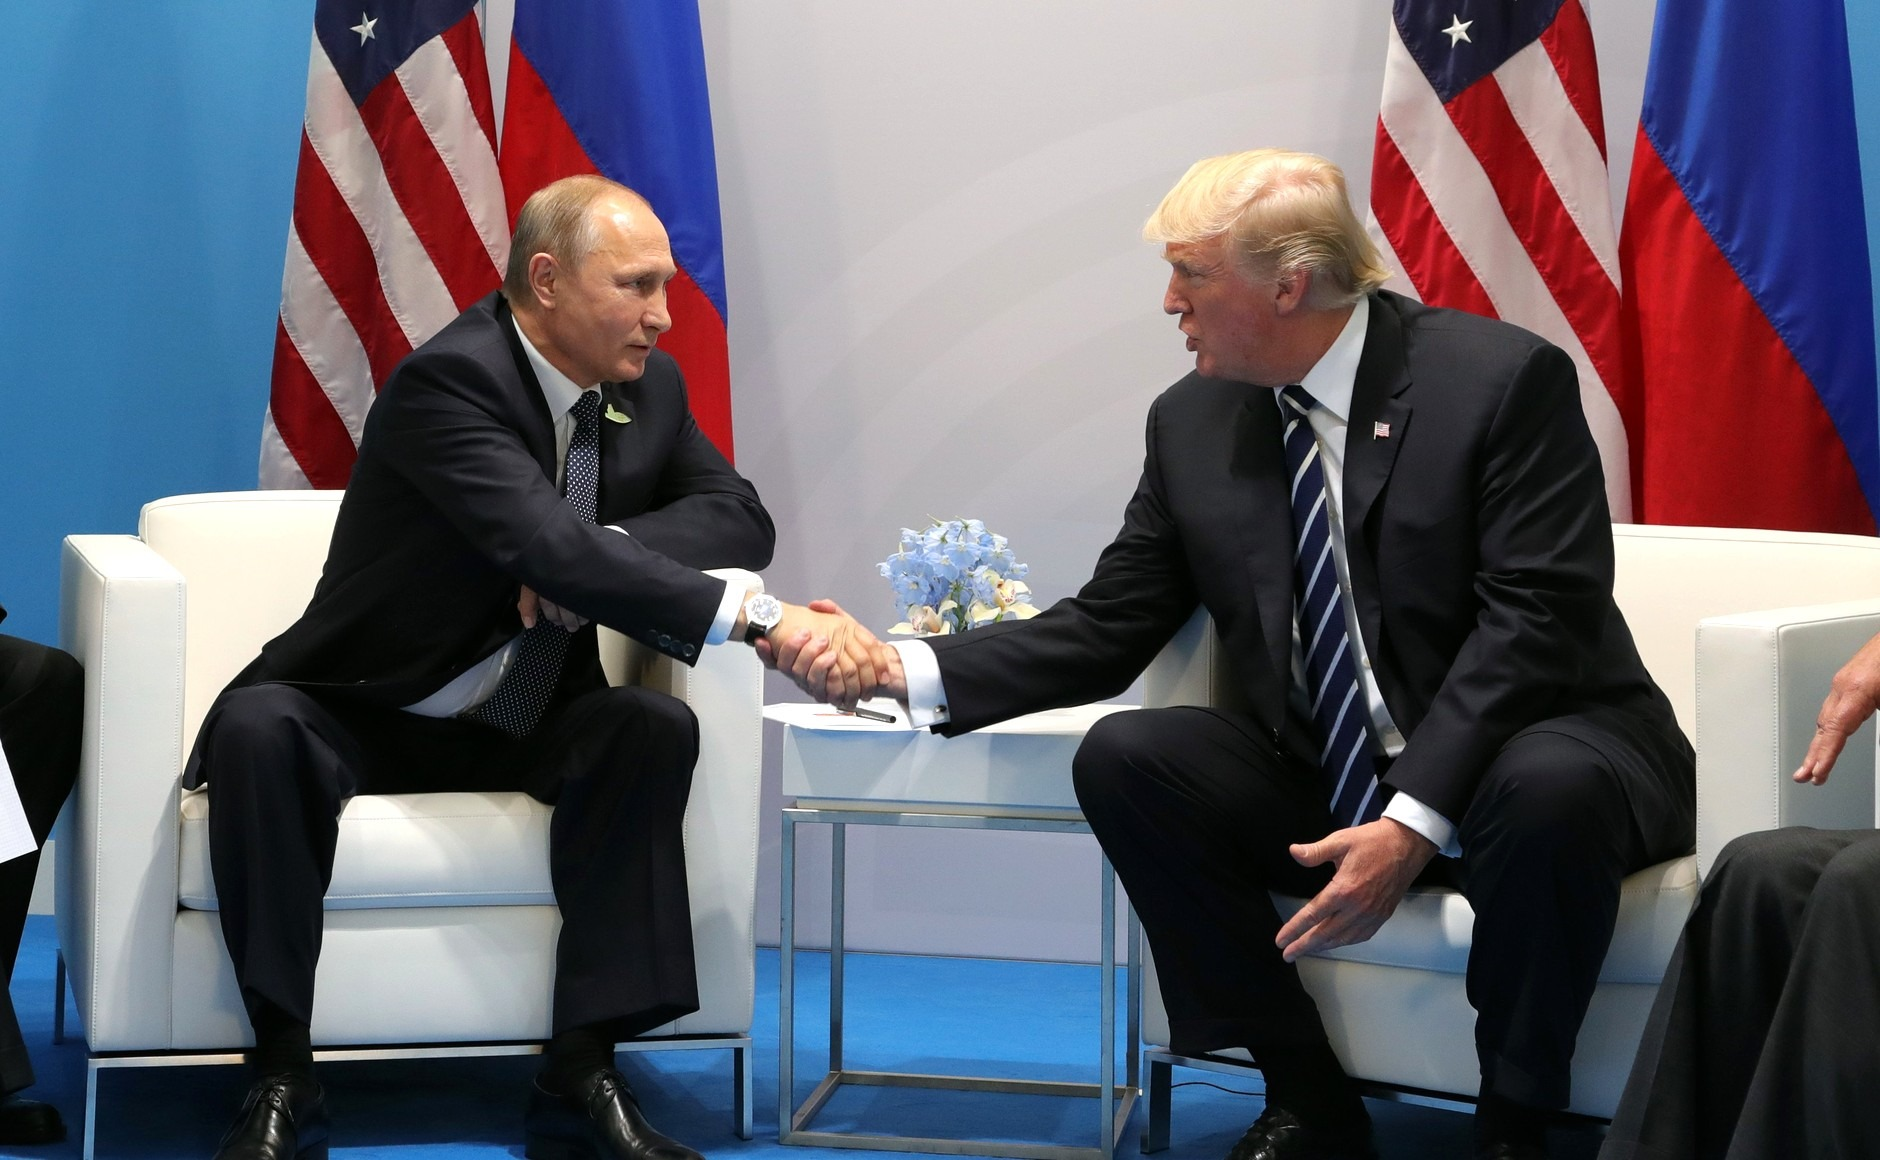 European Official: Trump Is Working In Tandem With Putin To Weaken Europe - The Intellectualist